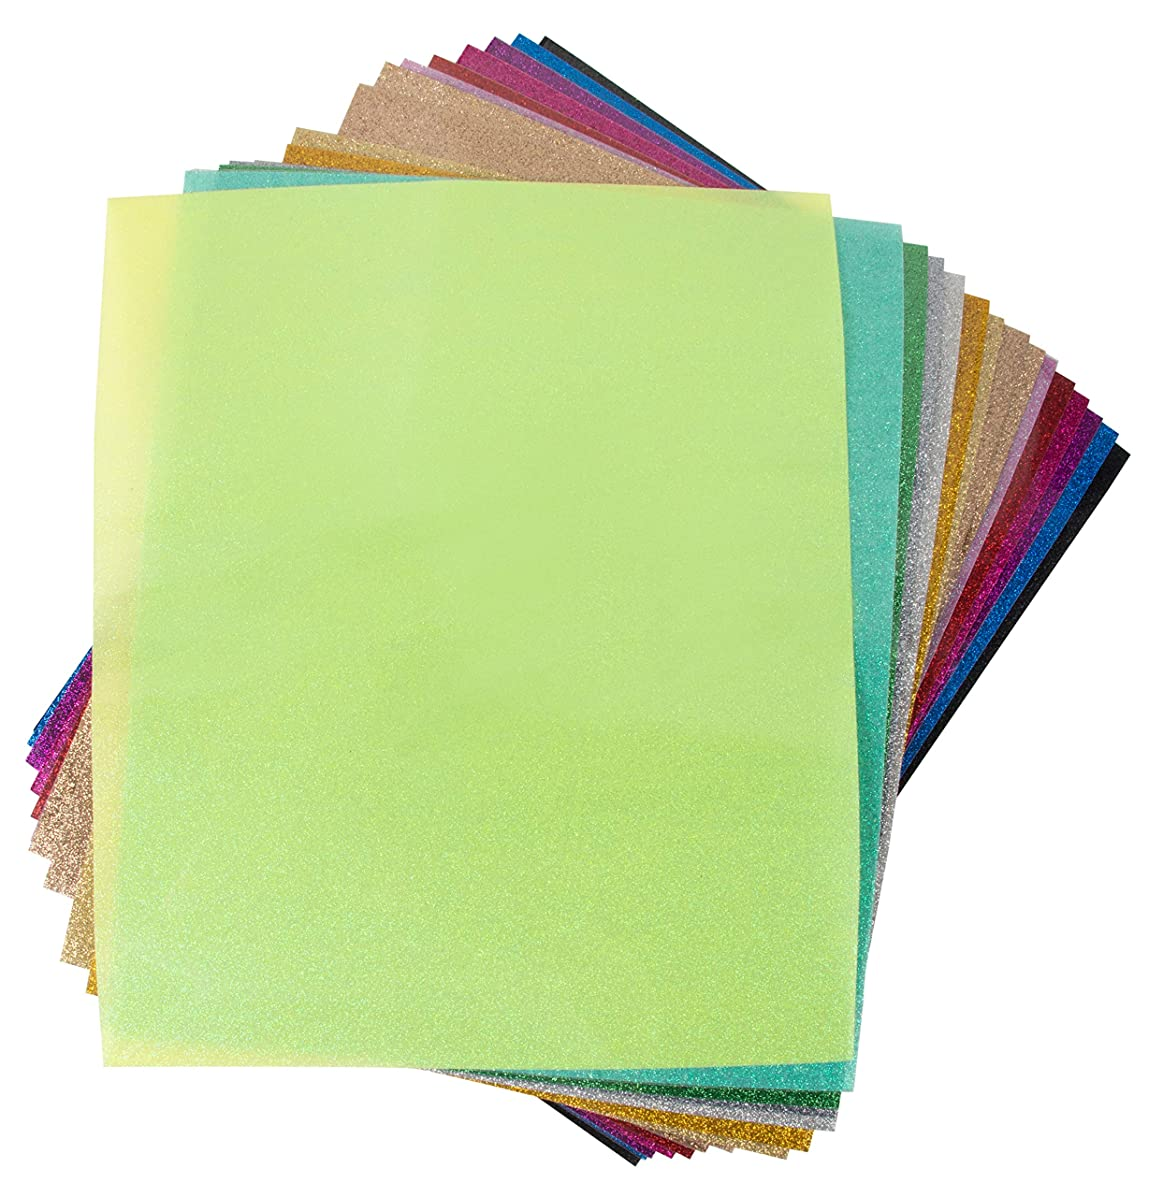 15 Pack Vinyl Sheets for Heat Transfer Projects & Adhesive Application - Assorted Colors, 9.8 x 11.8 Inches